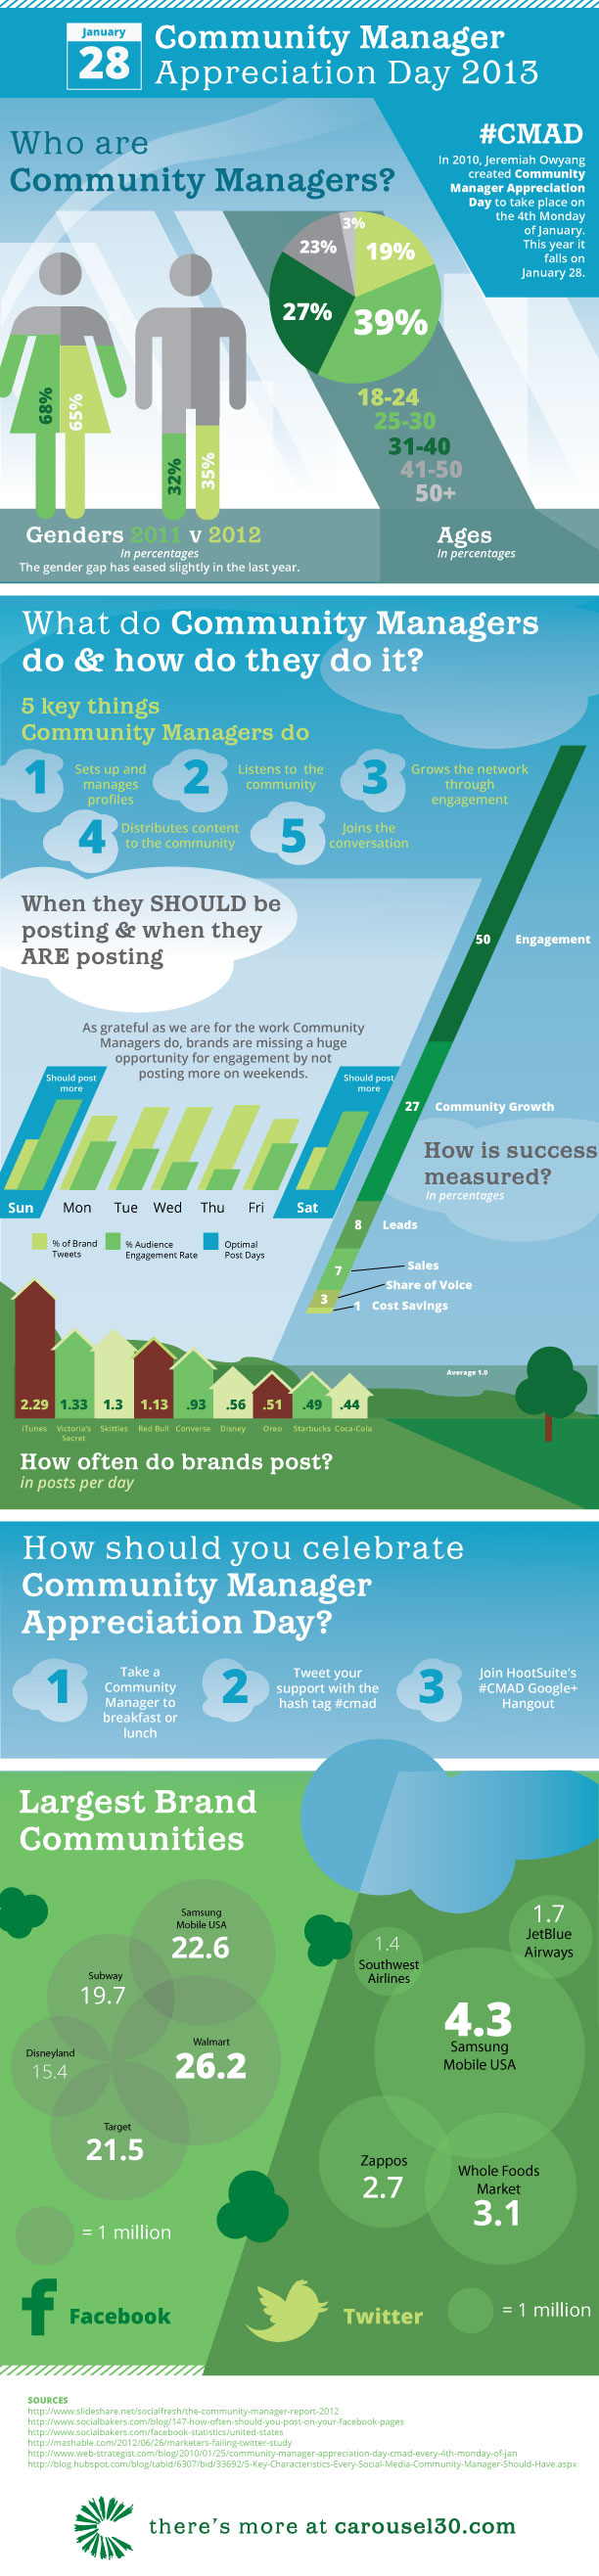 What a Community Manager Does [Infographic] image c30 community management infographic1